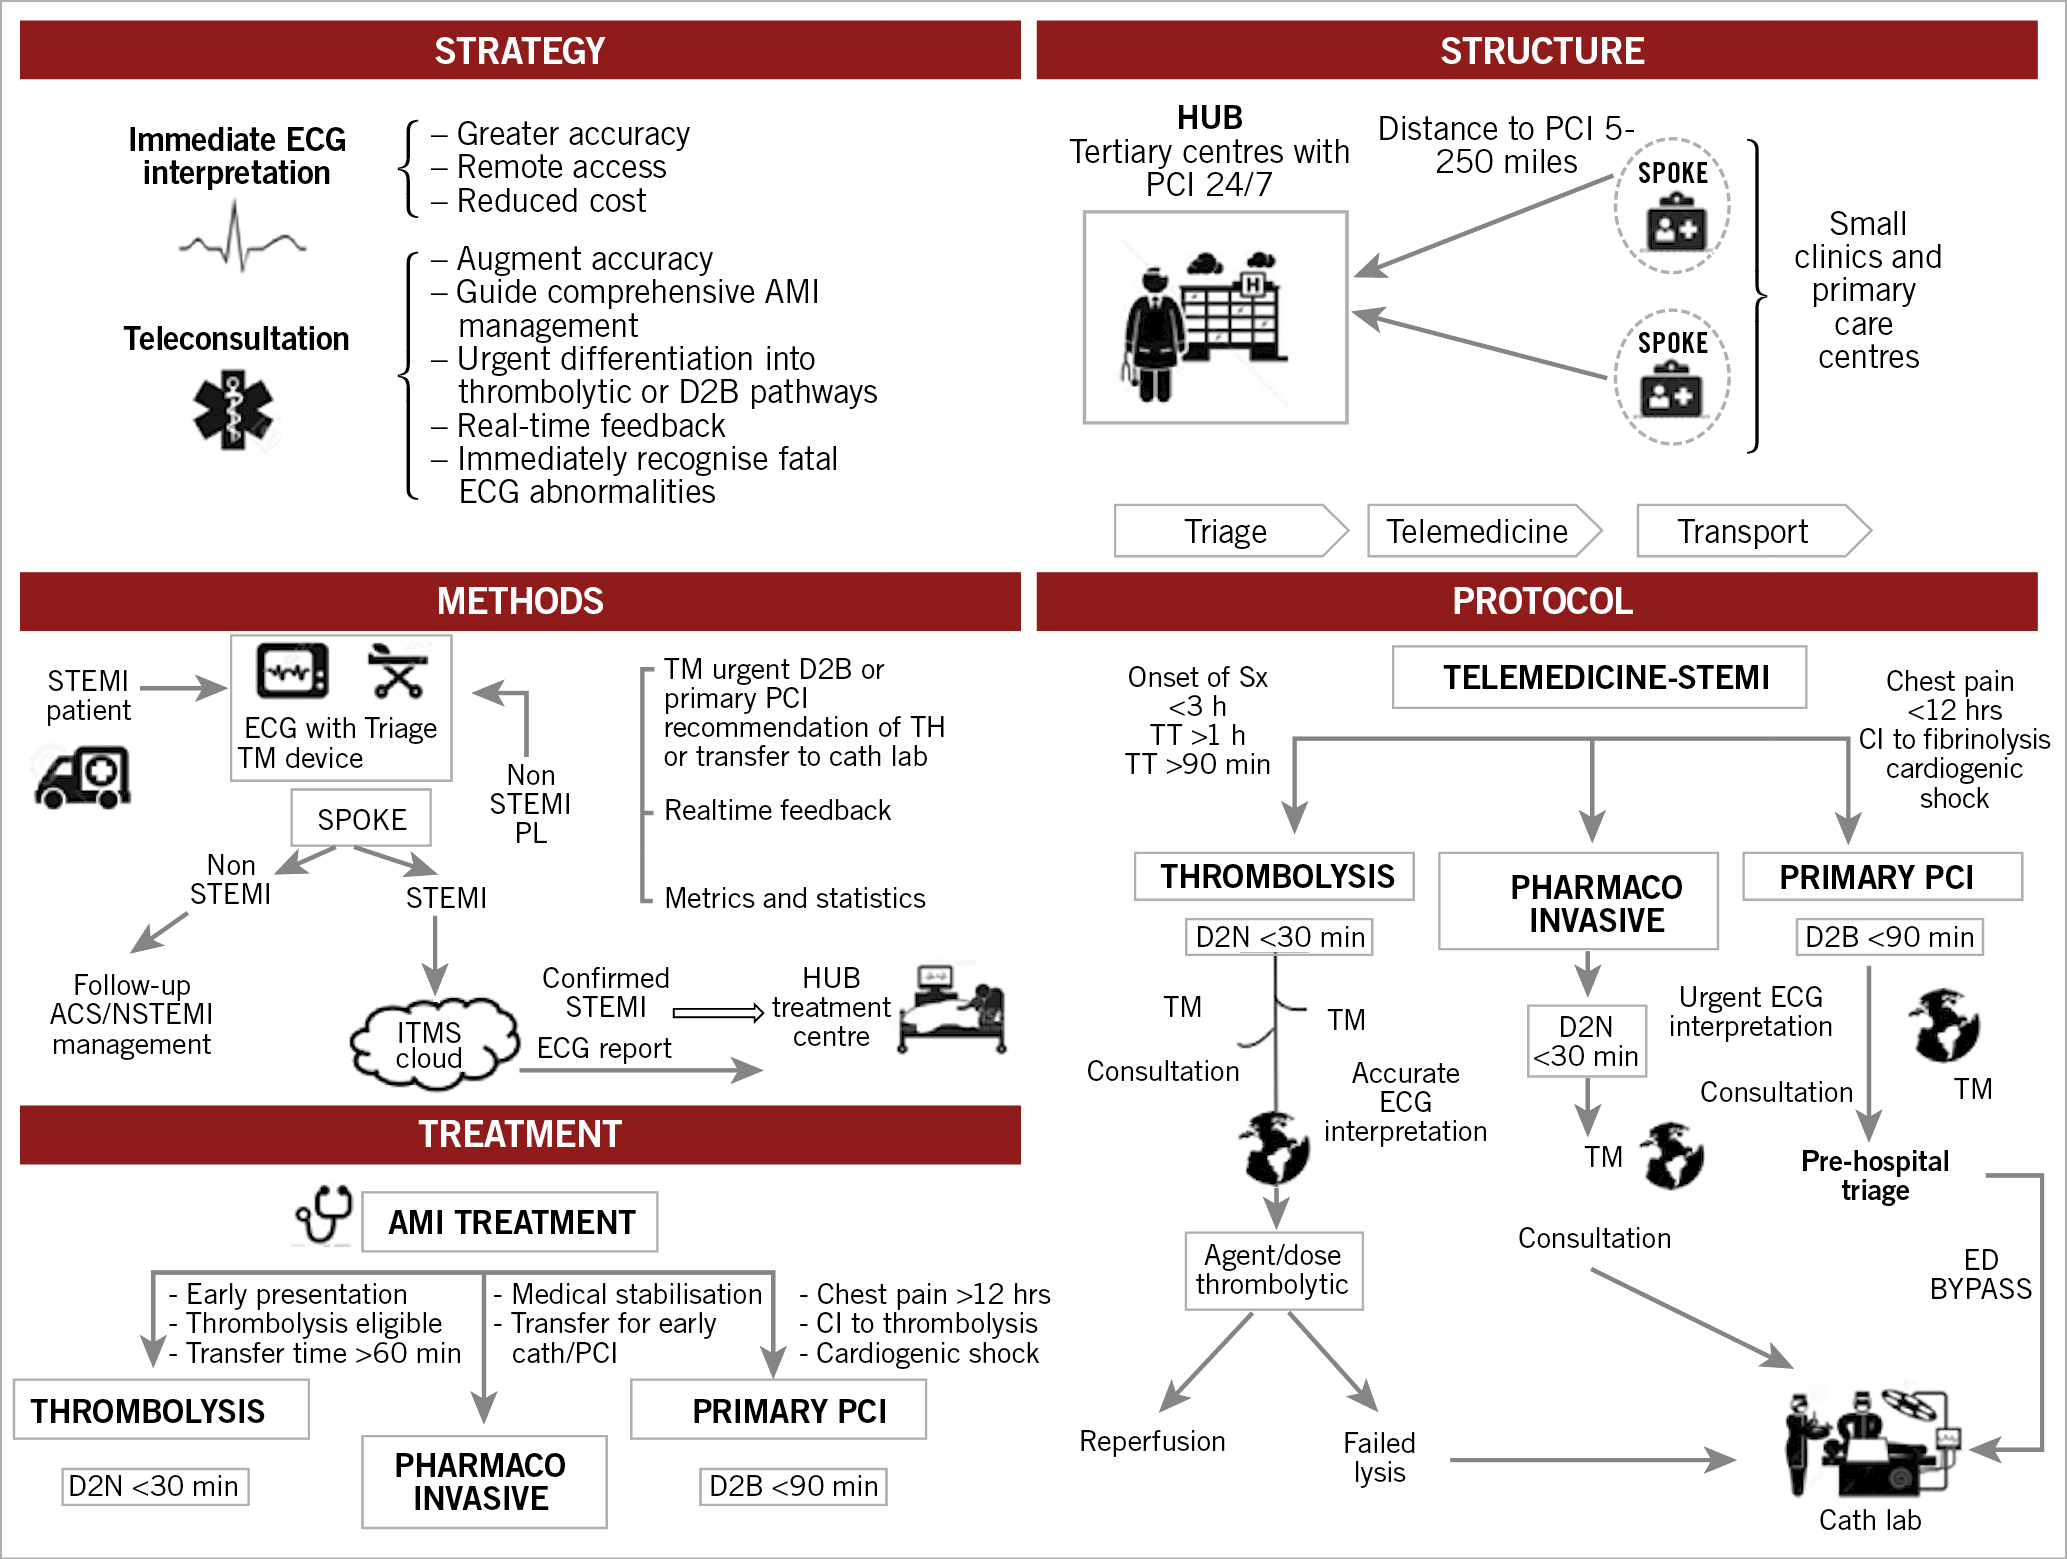 Figure 1. Comprehensive LATIN strategy and standardised protocol. CI: contraindication; D2B: door to balloon time; D2N: door to needle time; ECG: electrocardiogram; ITMS: International Telemedical Systems; PCI: percutaneous coronary intervention; STEMI: ST-elevation myocardial infarction; TH: telemedicine hub; TM: telemedicine device; TT: transfer time